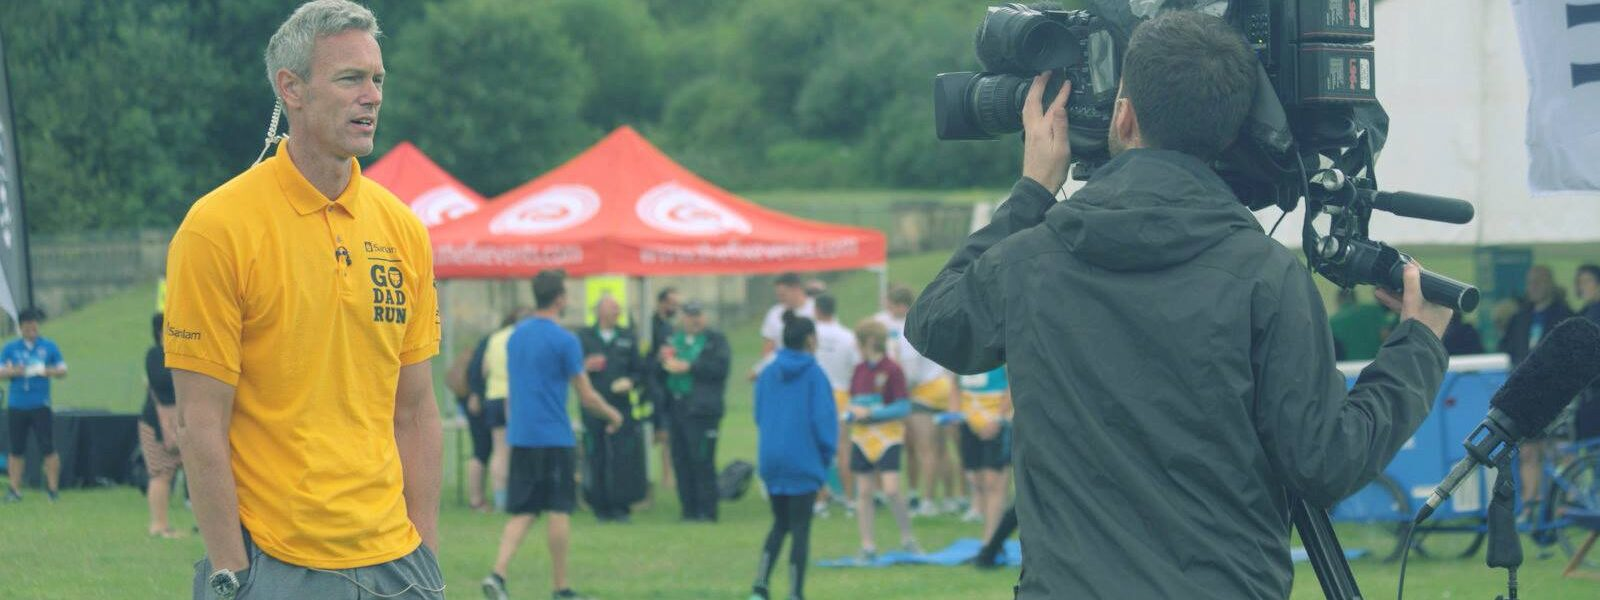 Square Elephant Productions_Video Production a London Go Dad Run